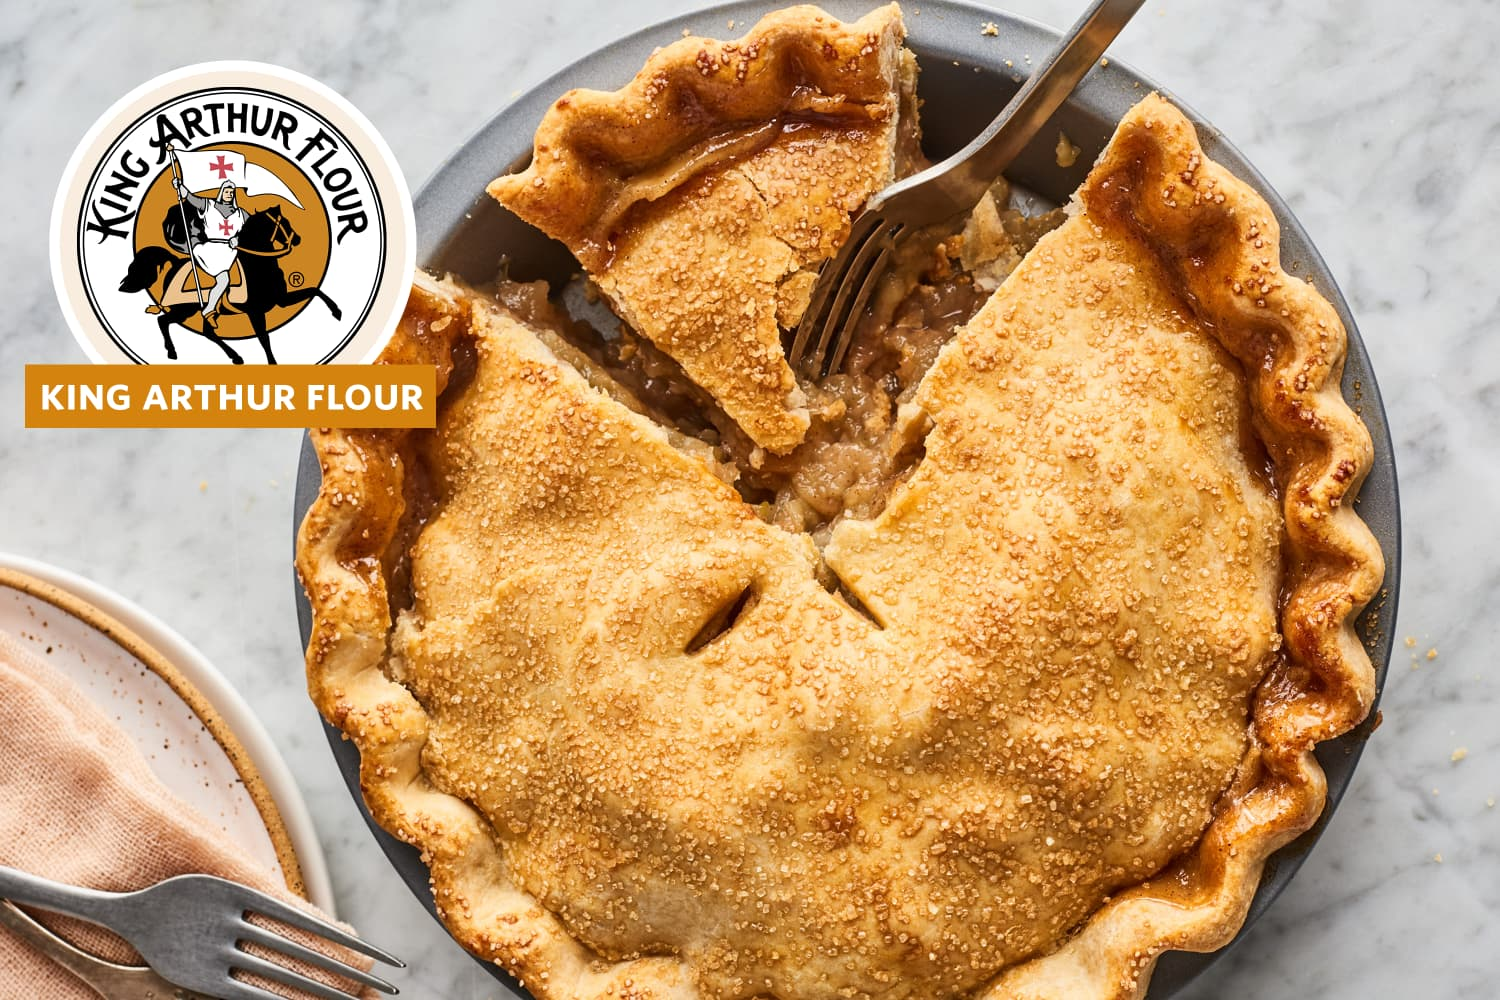 King Arthur Flour's Secret for the Best-Ever Apple Pie